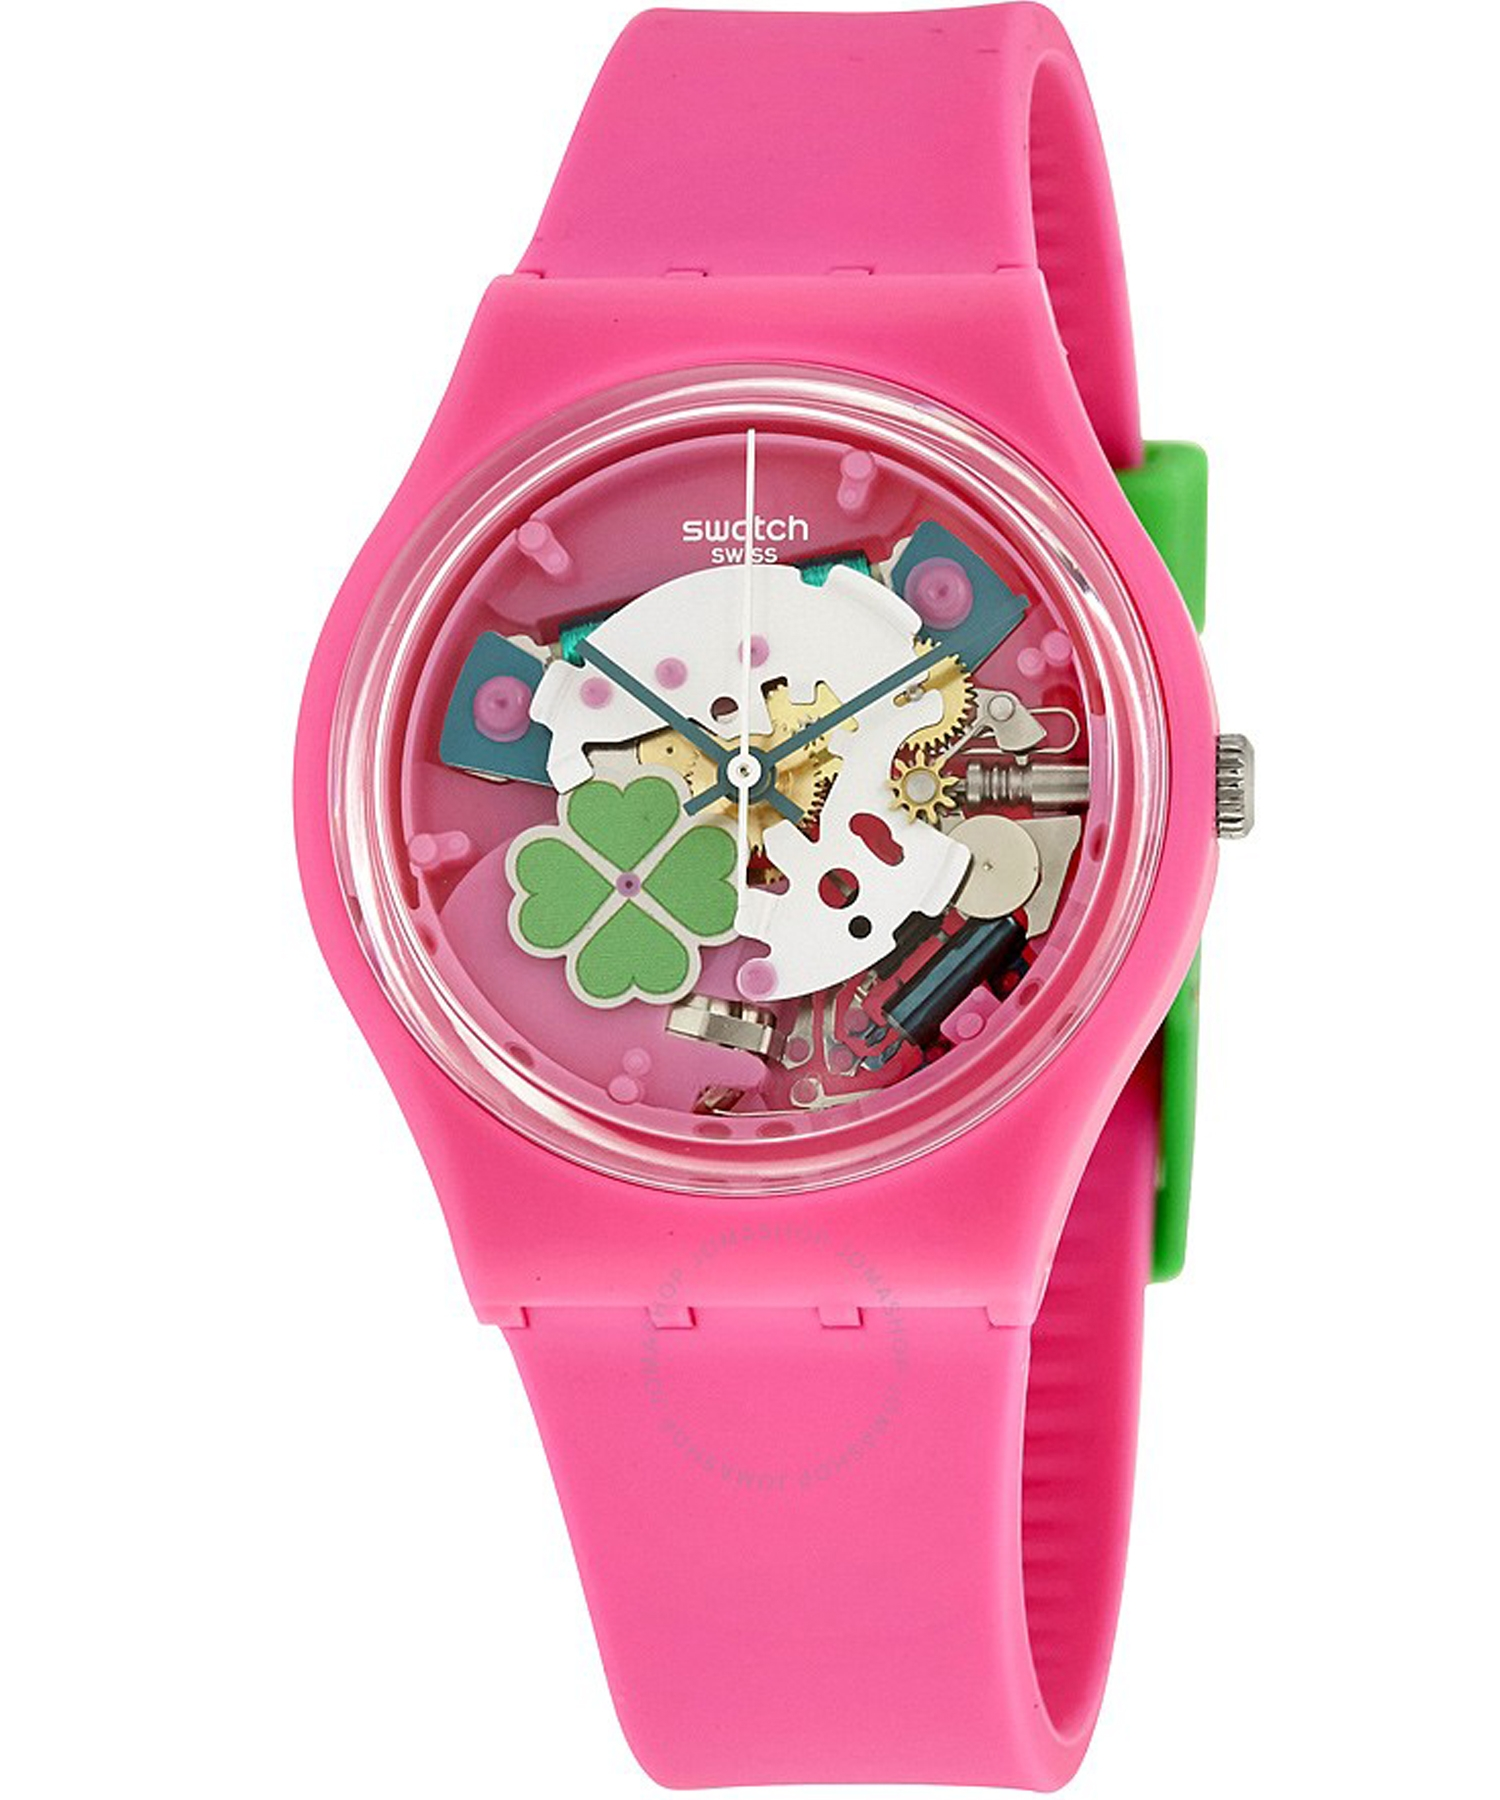 Genskie_chasy_Swatch (7)